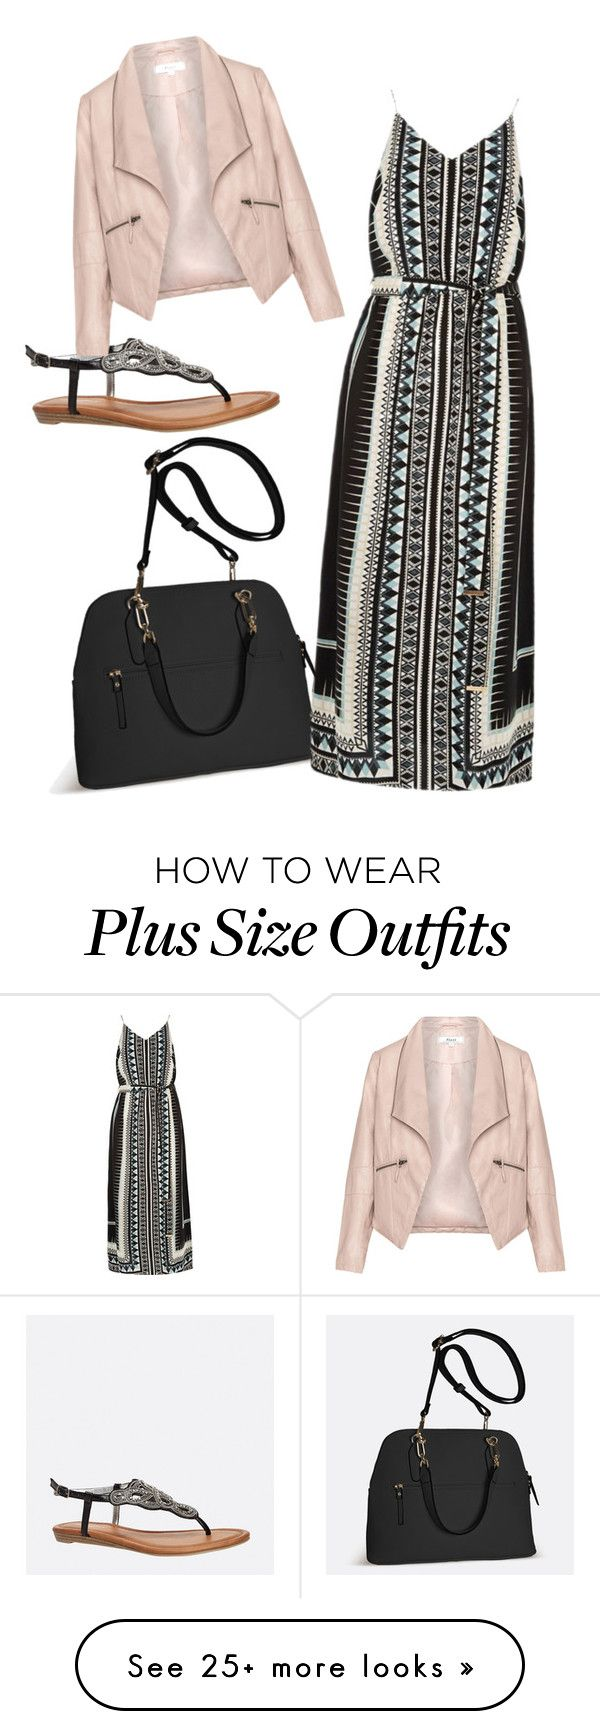 """Untitled #1732"" by samanthay7 on Polyvore featuring Avenue, River Island and Zizzi"